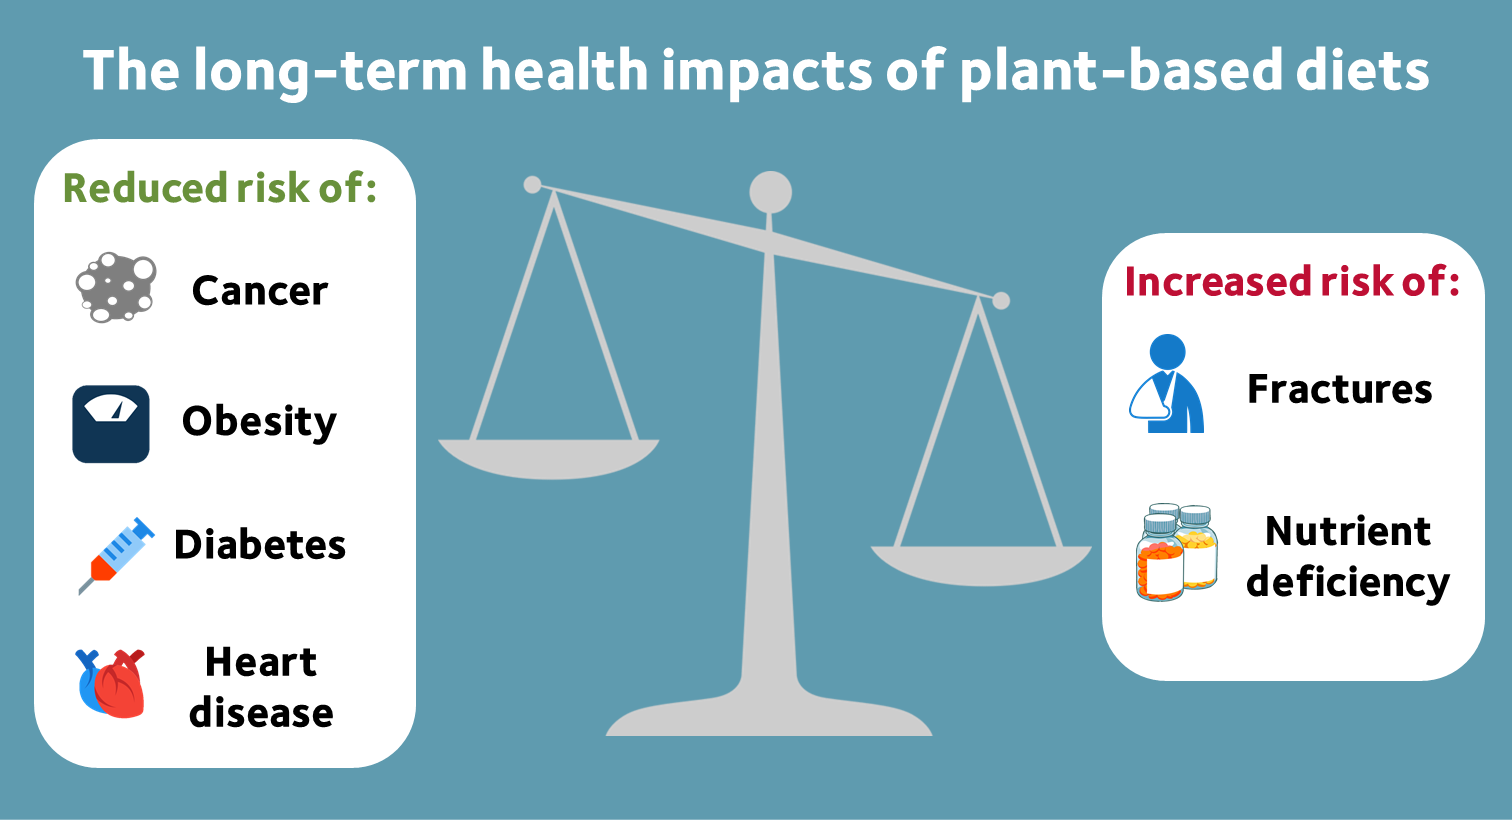 Graphic of weighing scales illustrating health benefits and risks associated with a plant-based diet.